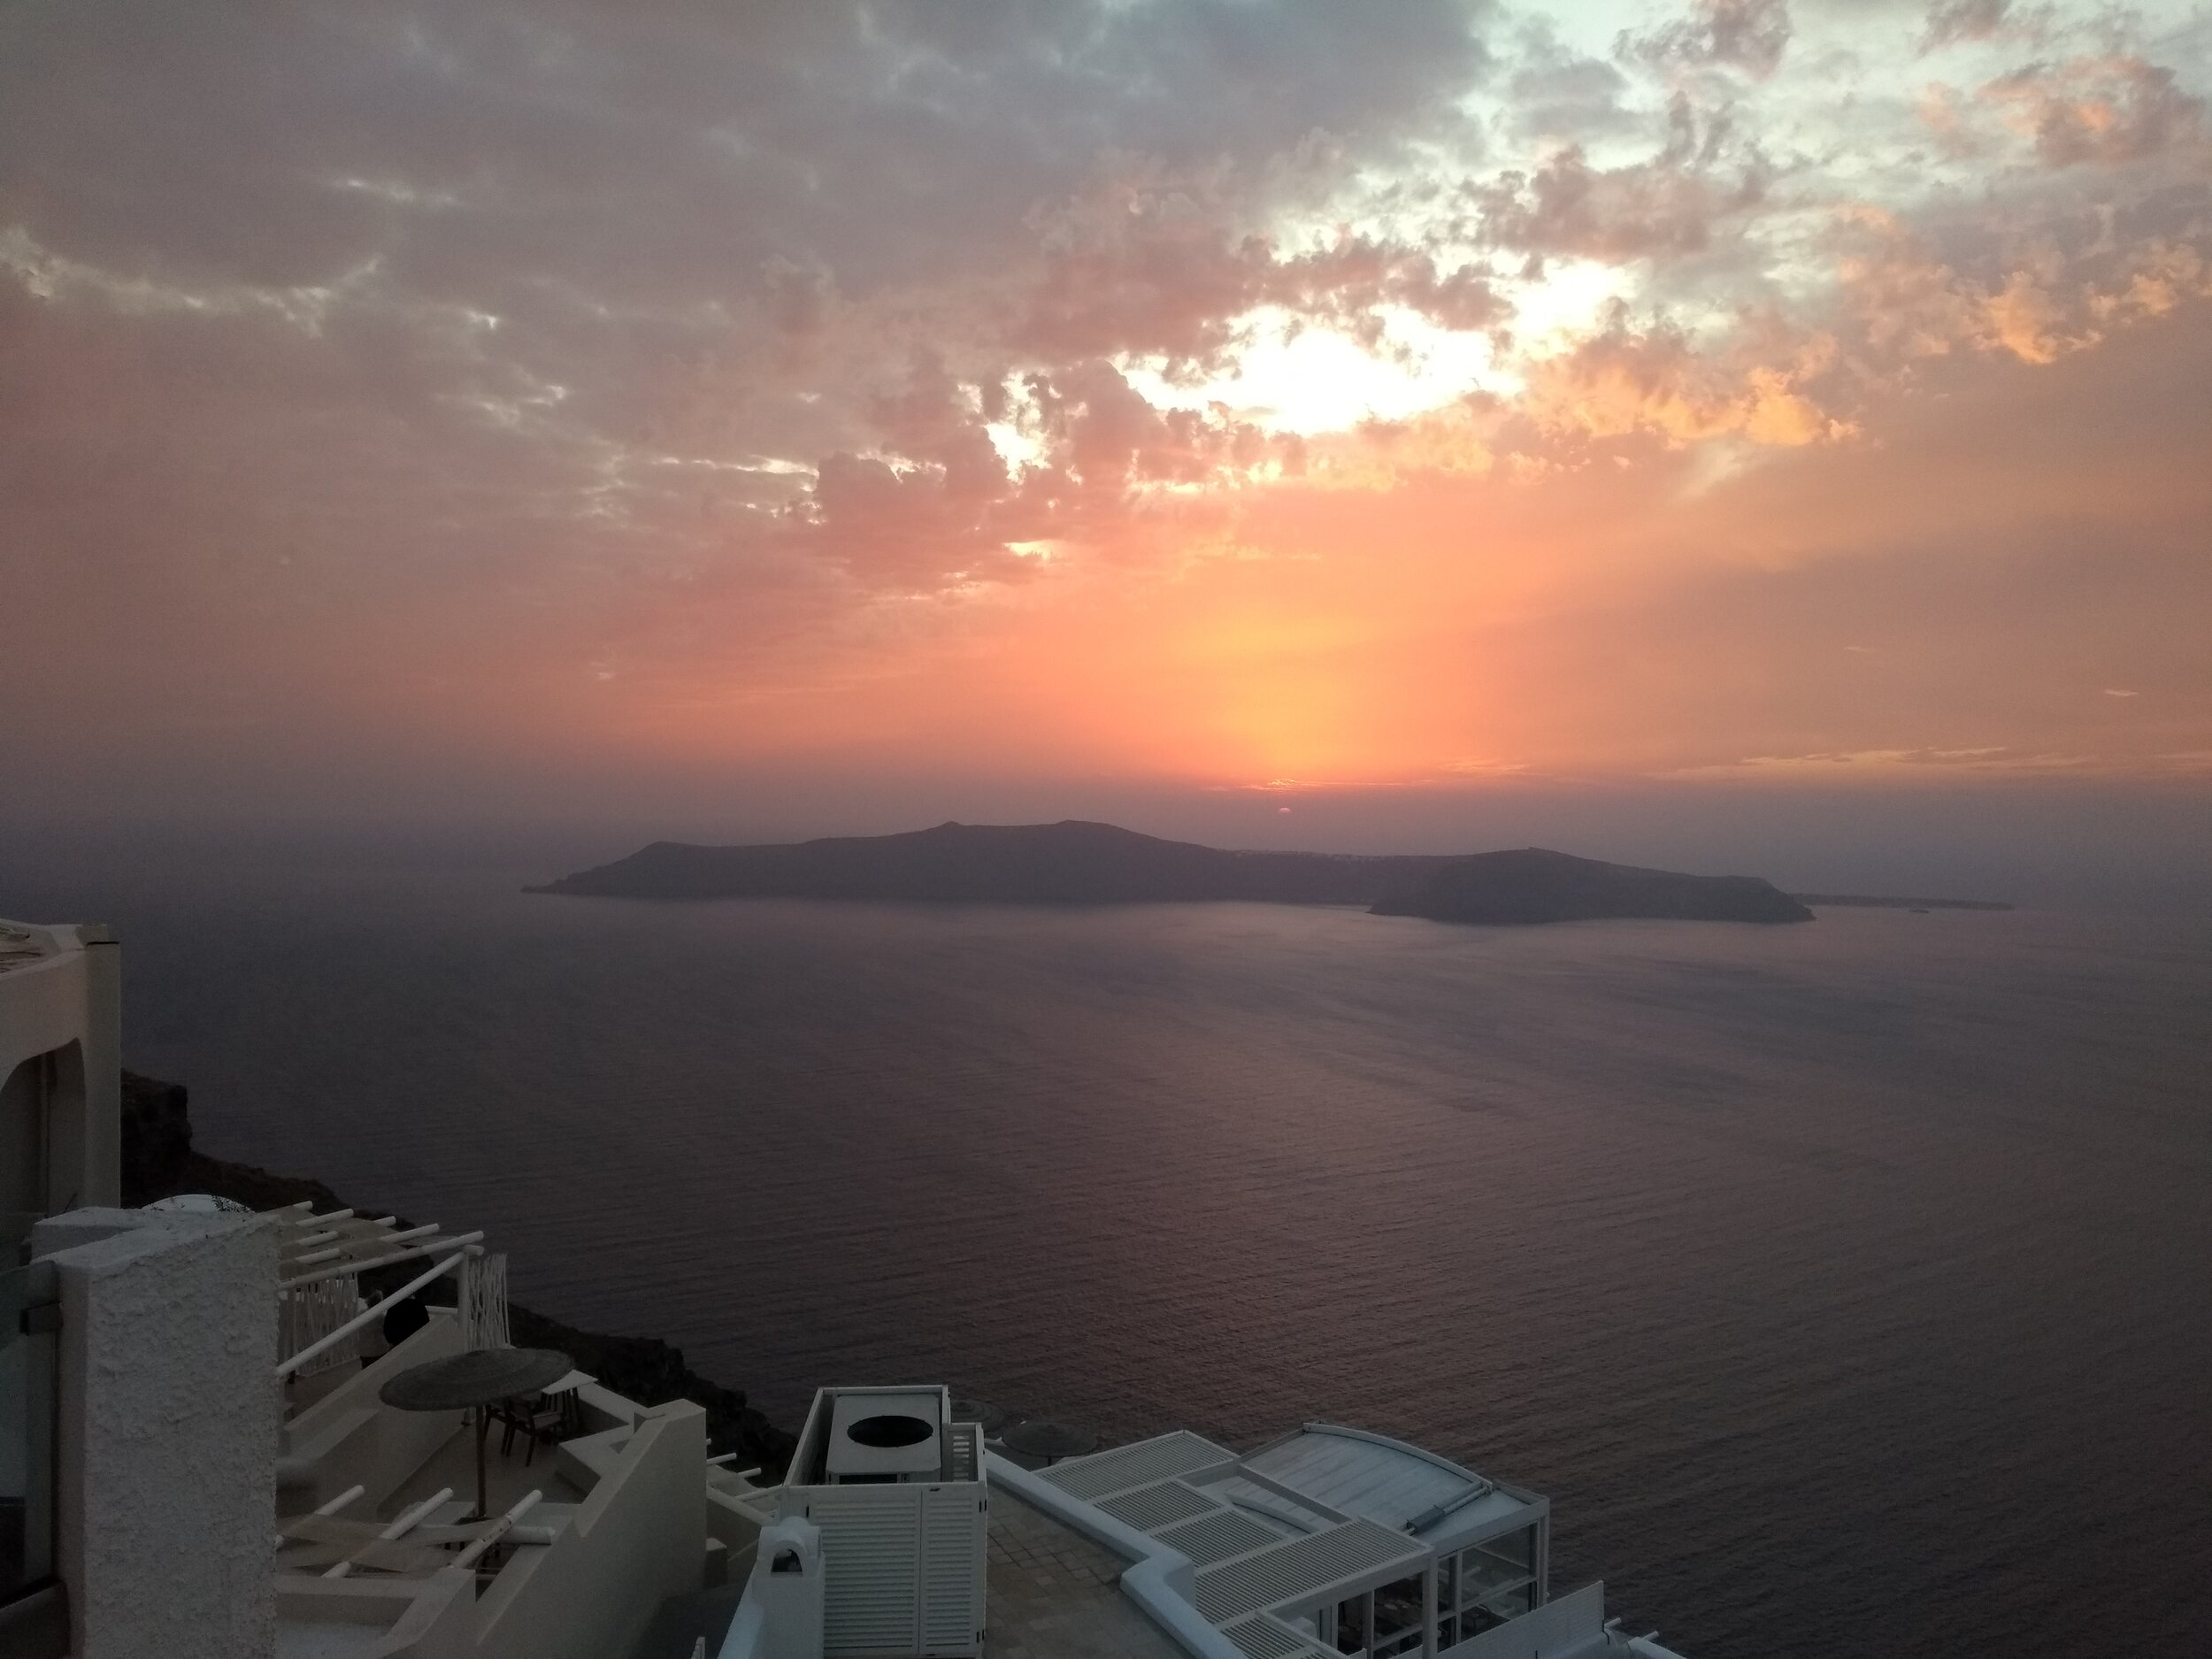 Sunset in Santorini. Hopefully the Kodak Ektar I shot using my Yashica D comes out even more stunning than this.